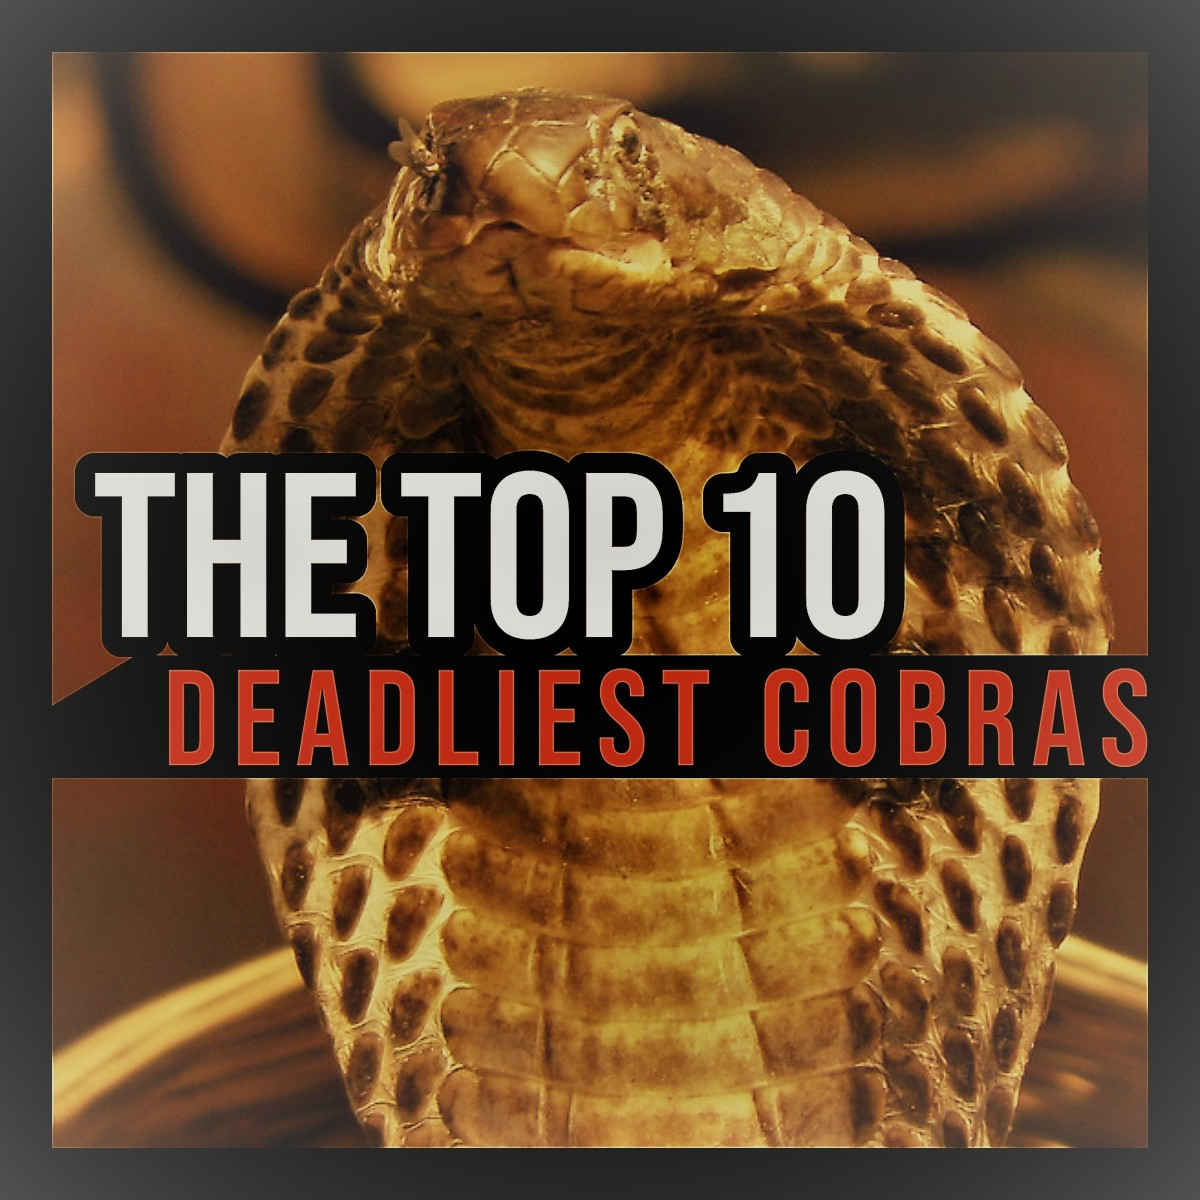 The Top 10 Deadliest Cobras in the World.